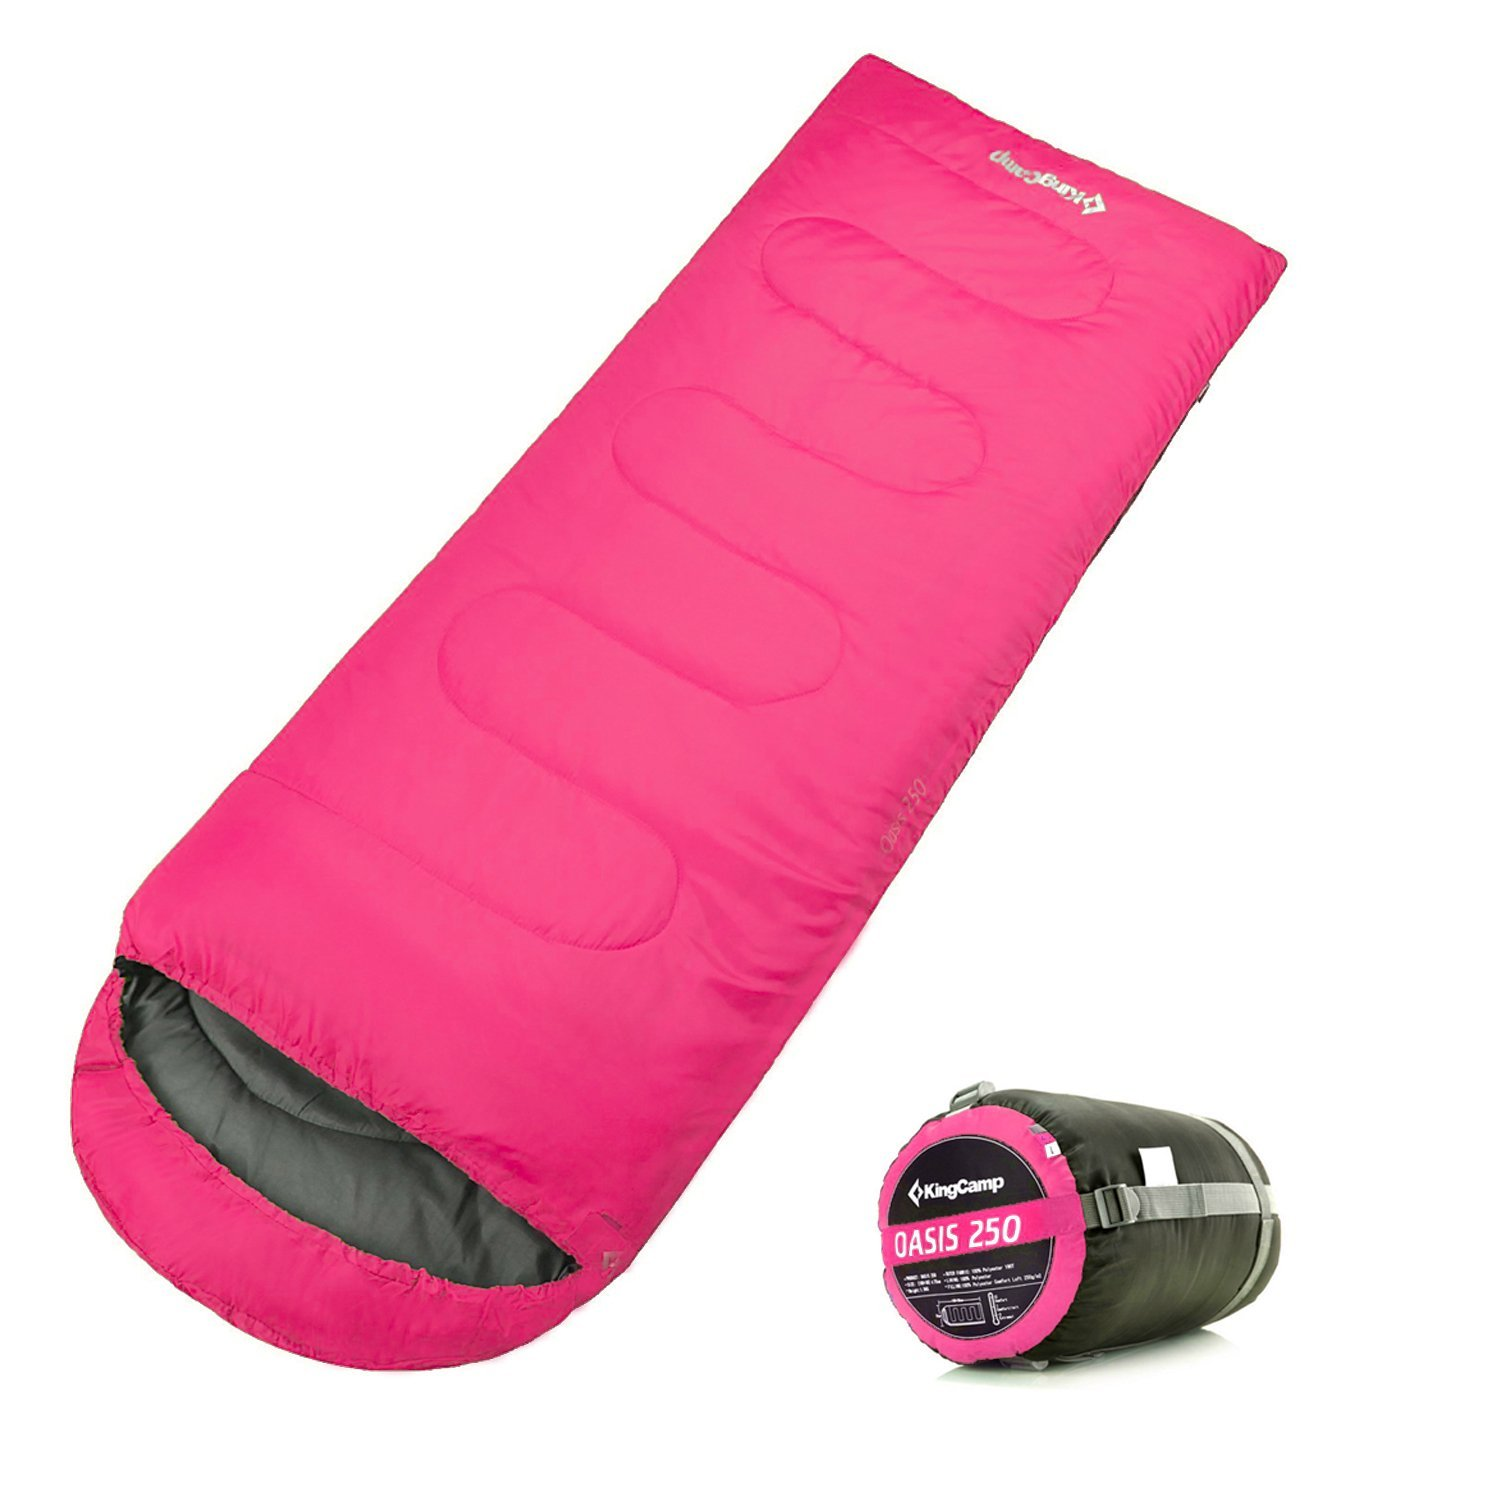 KingCamp Envelop Sleeping Bag 4 Season Lightweight Comfort with Compression Sack Camping Backpack